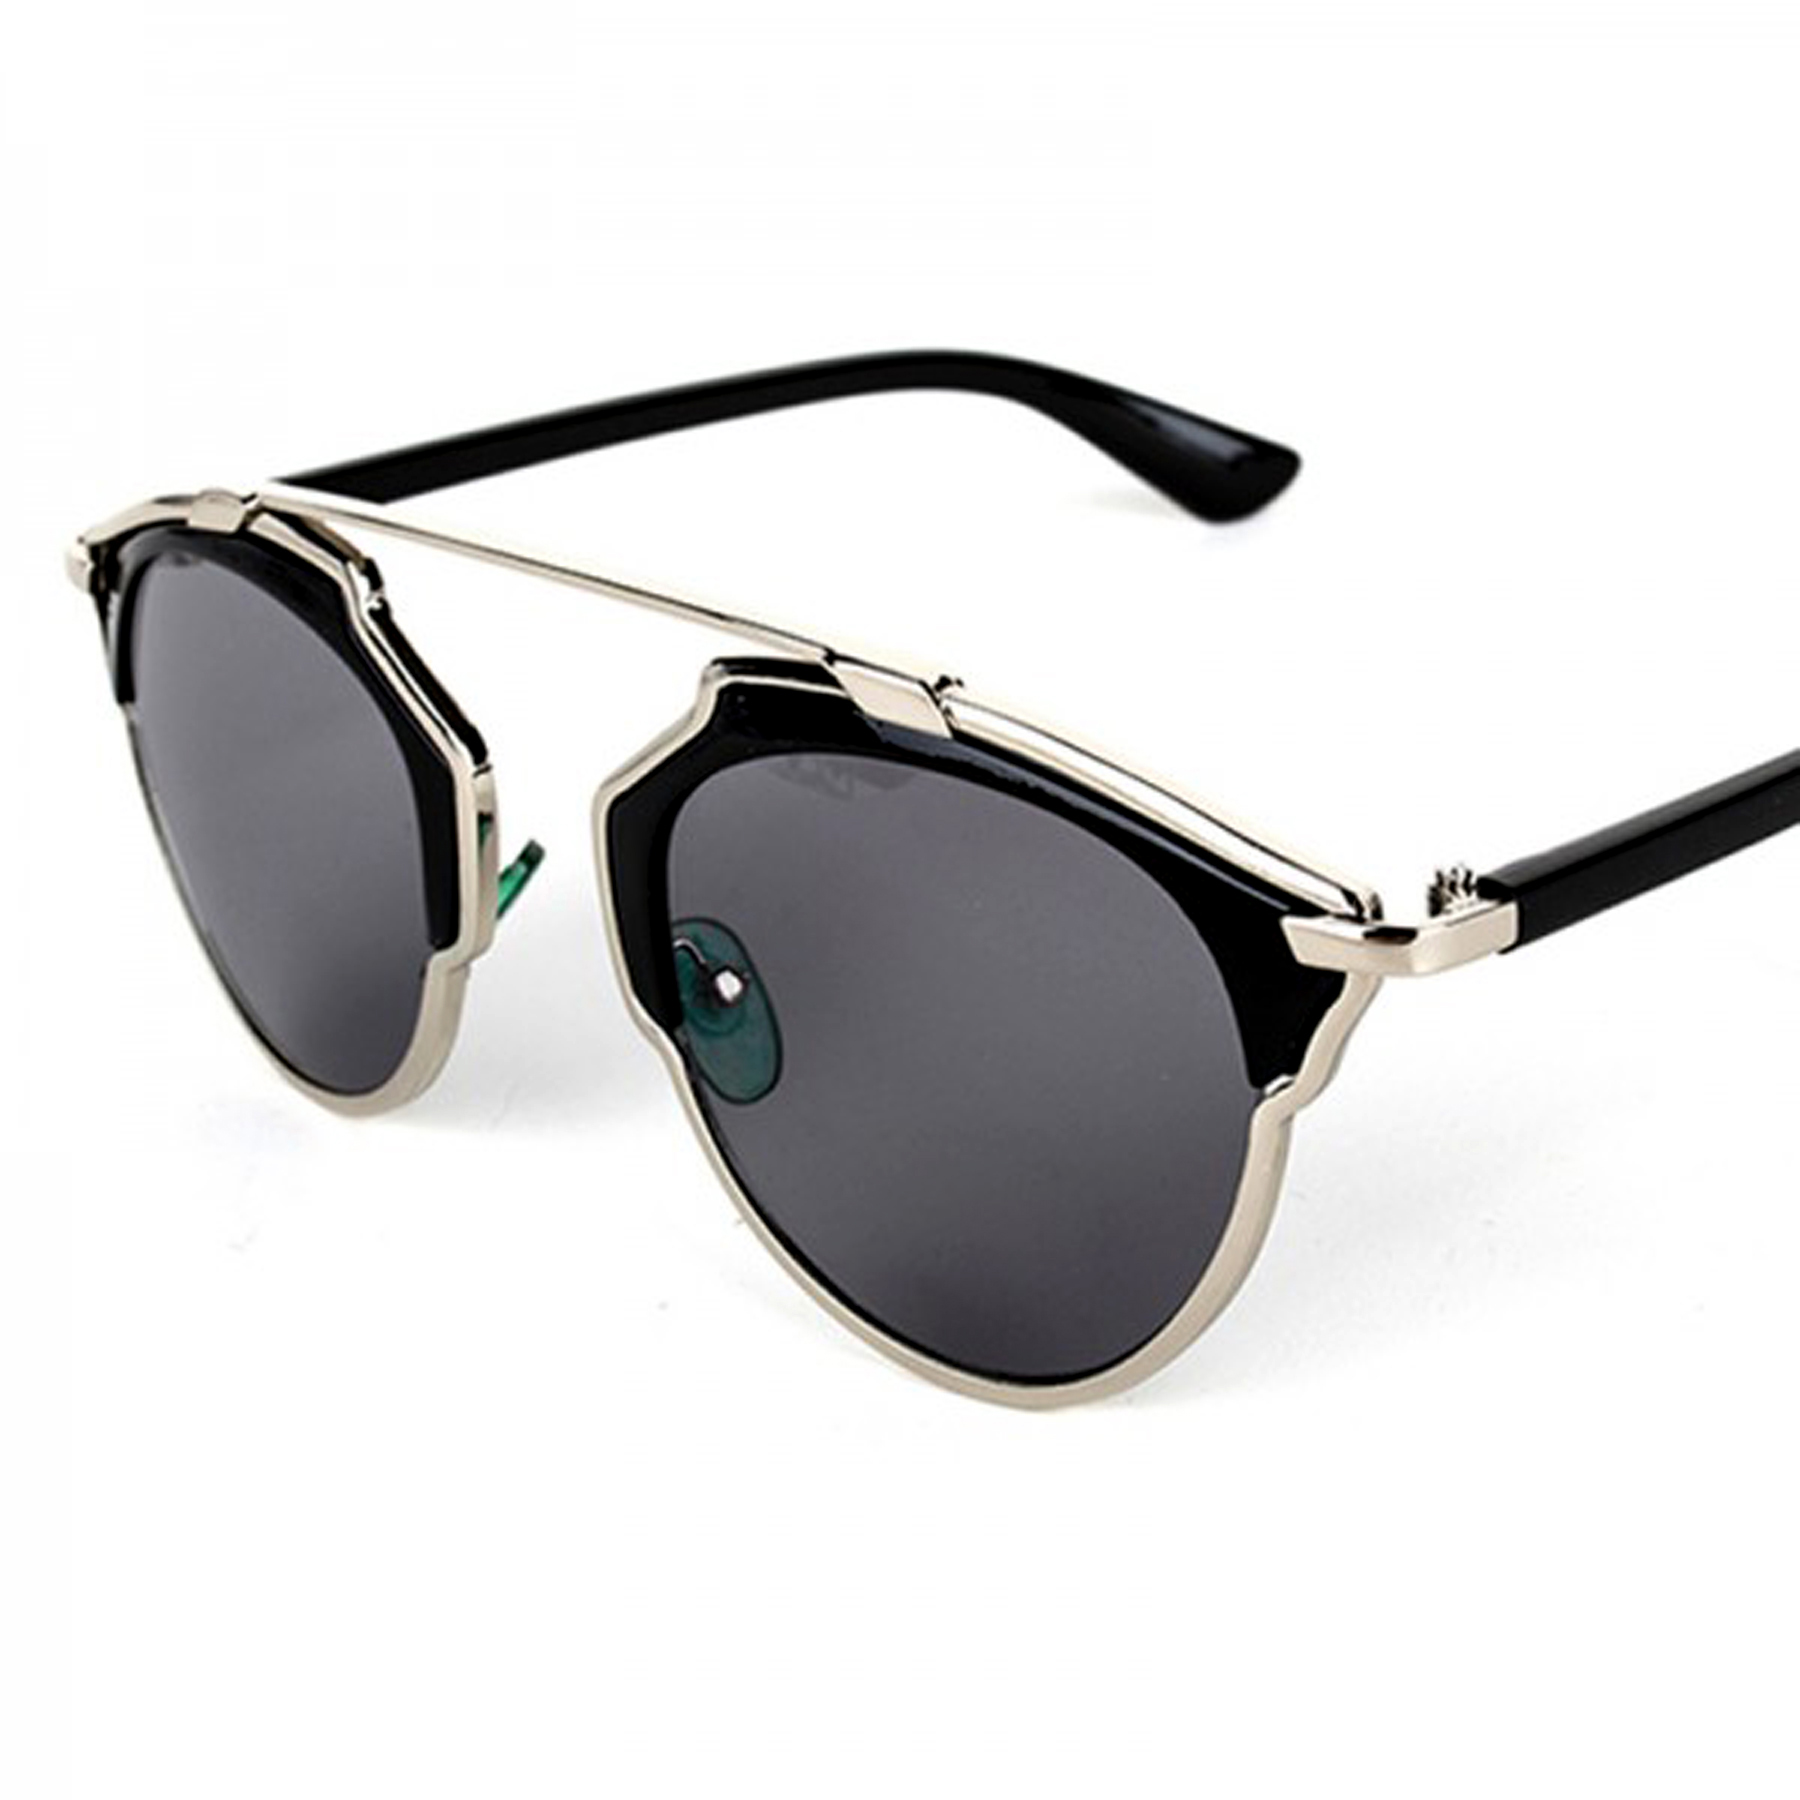 Gucci Sunglasses Womens 2016  eyecessorize yourself irresistible eyewear fads this season